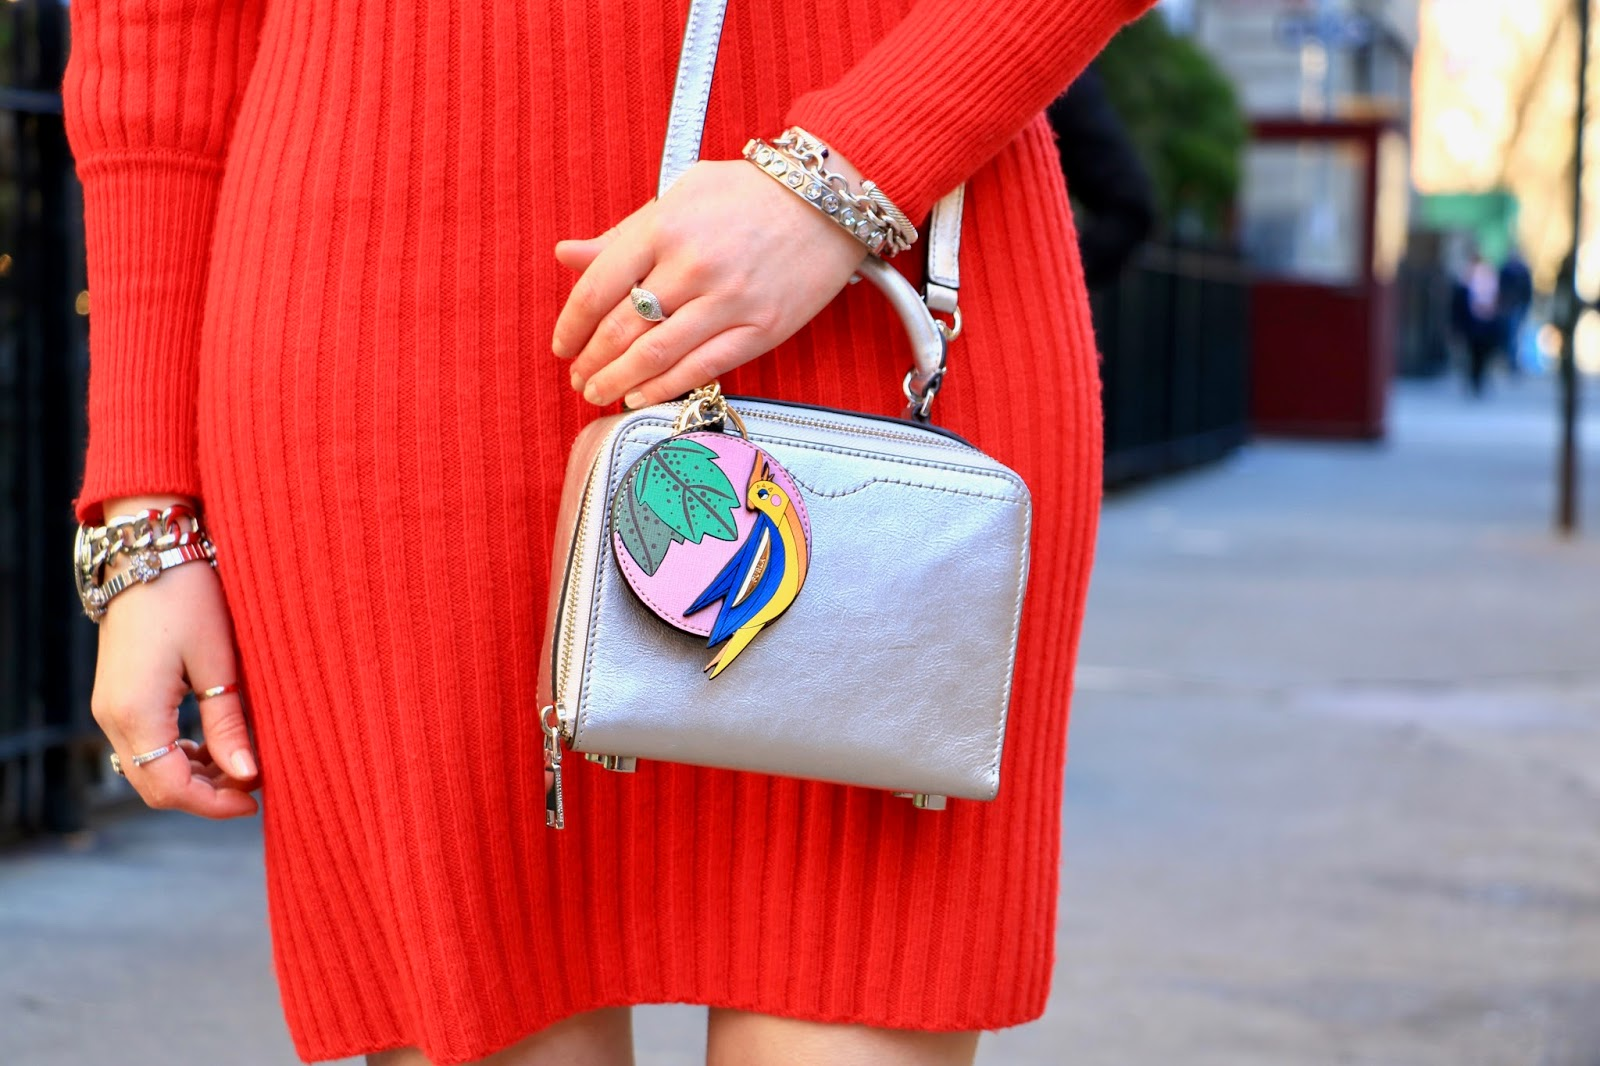 Nyc fashion blogger Kathleen Harper wearing a silver metallic Rebecca Minkoff purse